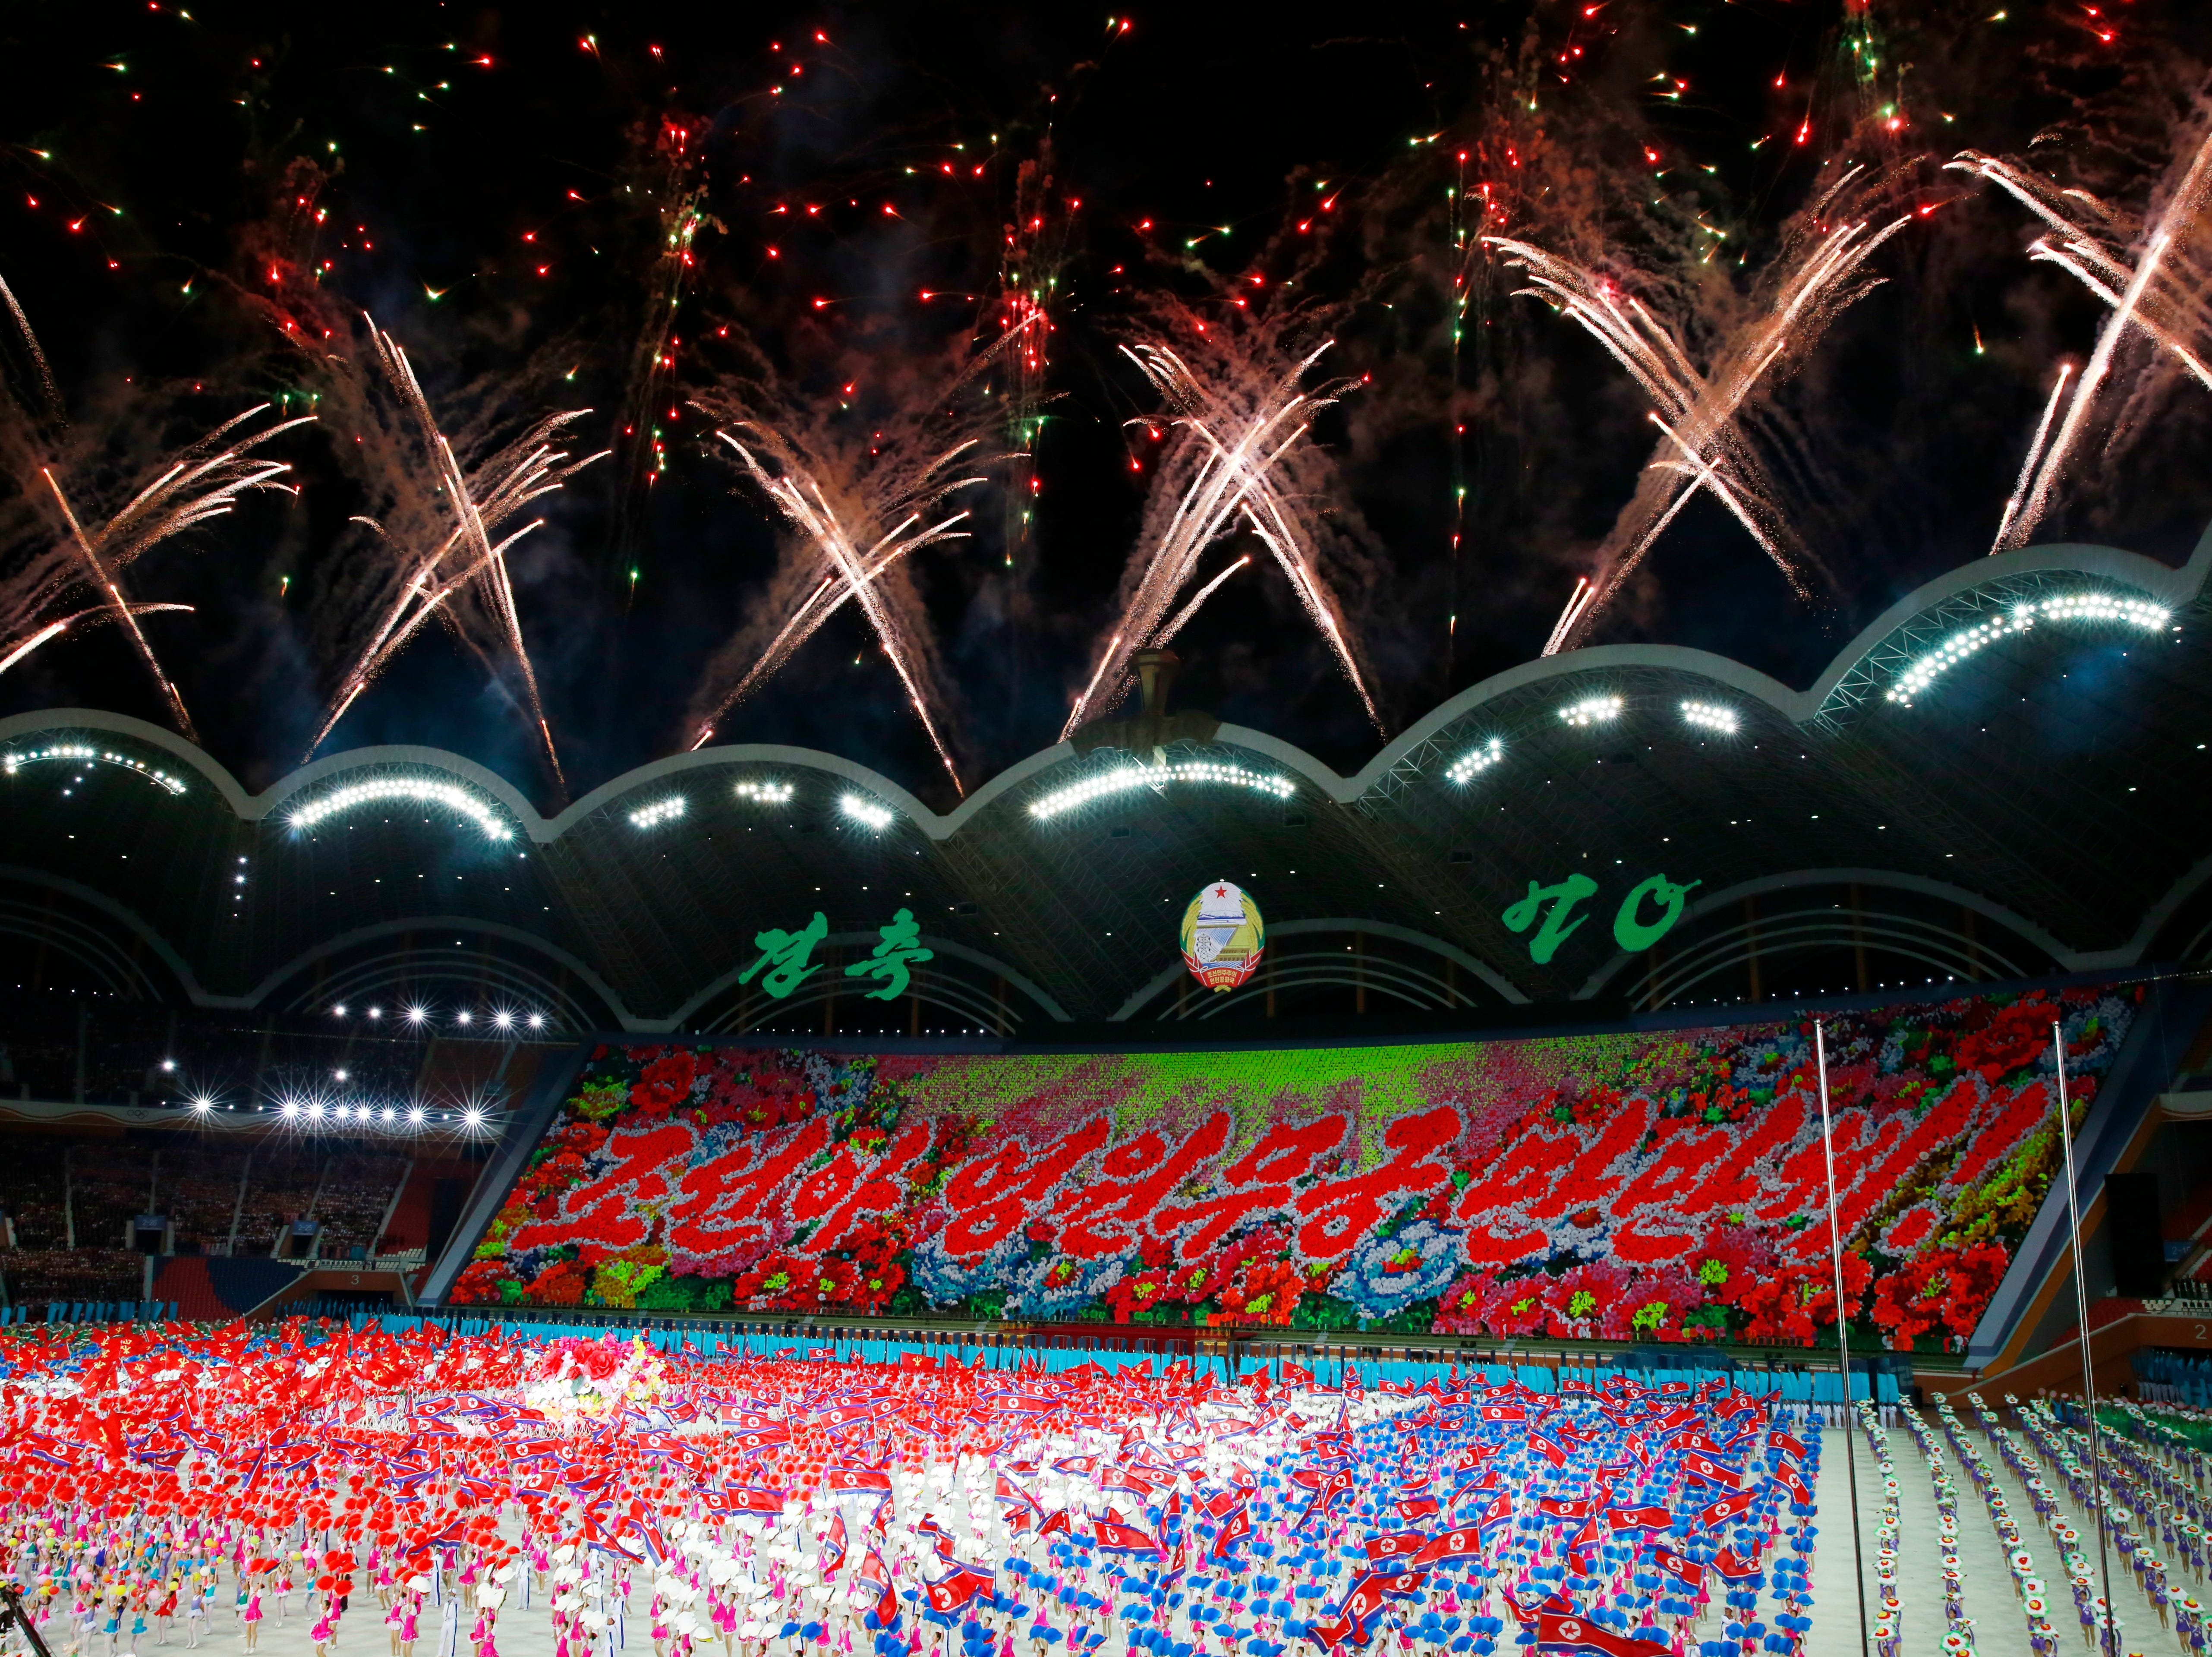 Fireworks erupt over the stadium during the Arirang Mass games celebrating the National Day and 70th anniversary of its Foundation in Pyongyang, North Korea on Sept. 9, 2018.